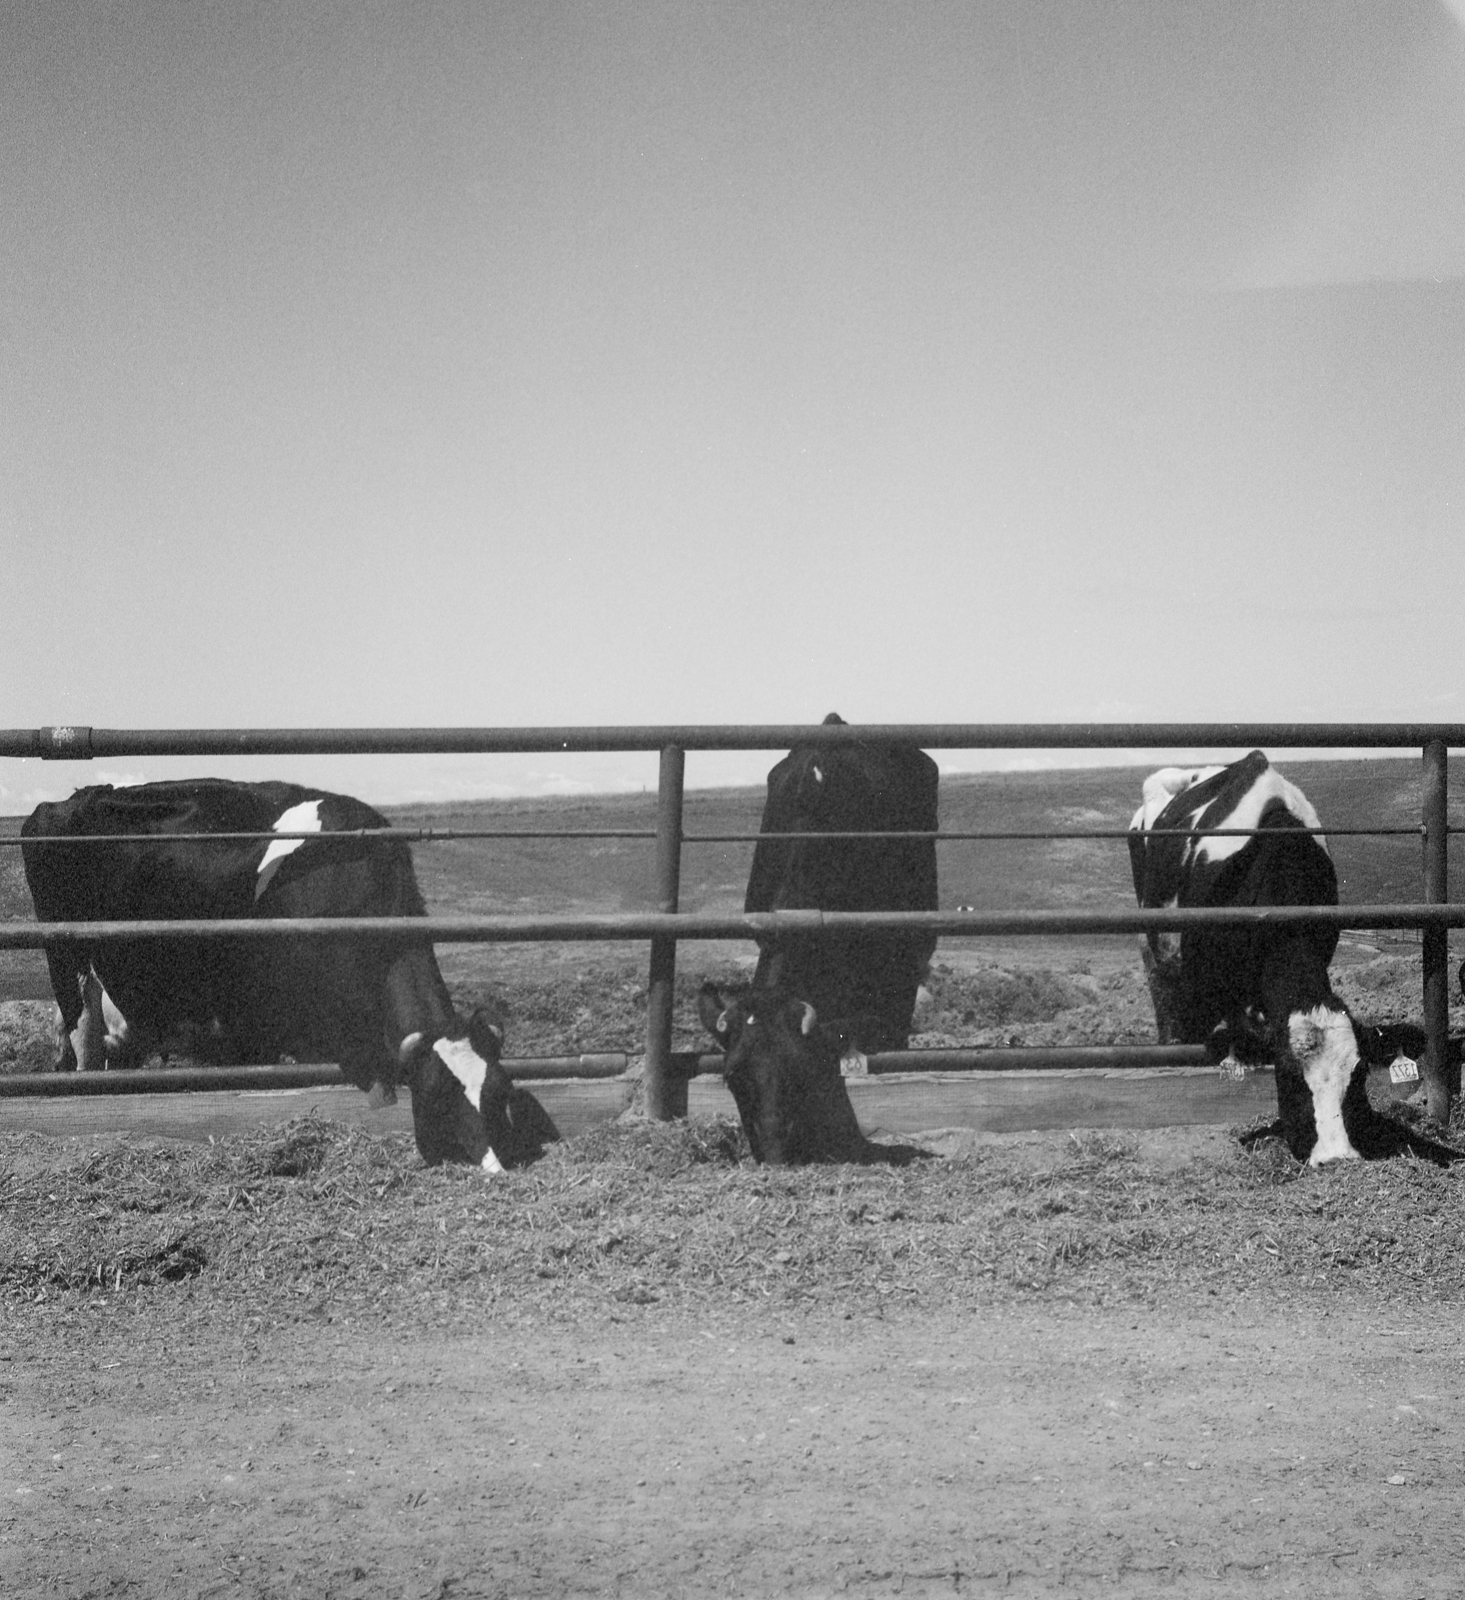 Holstein cattle, Beaver Creek Ranch, 2011. (Color film converted to B&W.)